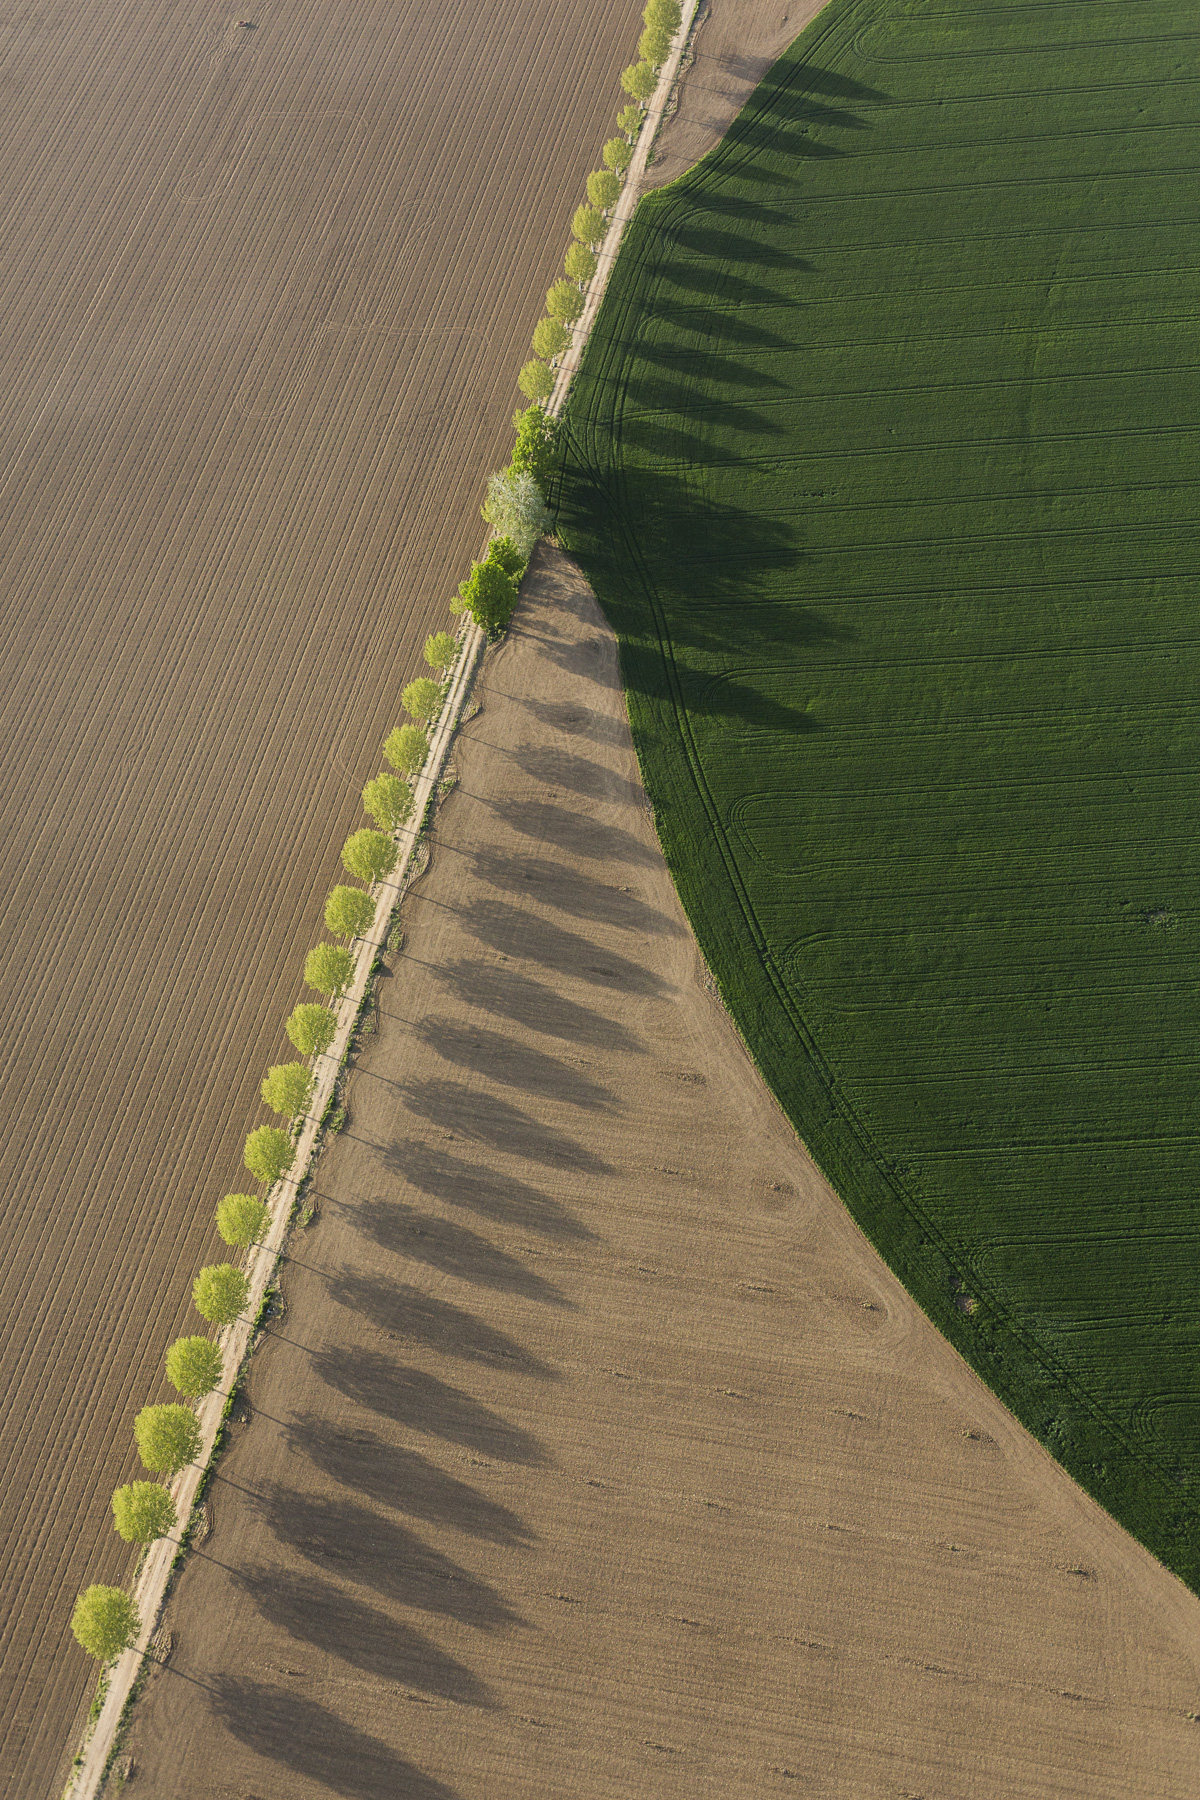 pivot irrigation and road with treesm Aerial views, farming, Algodor, Spain